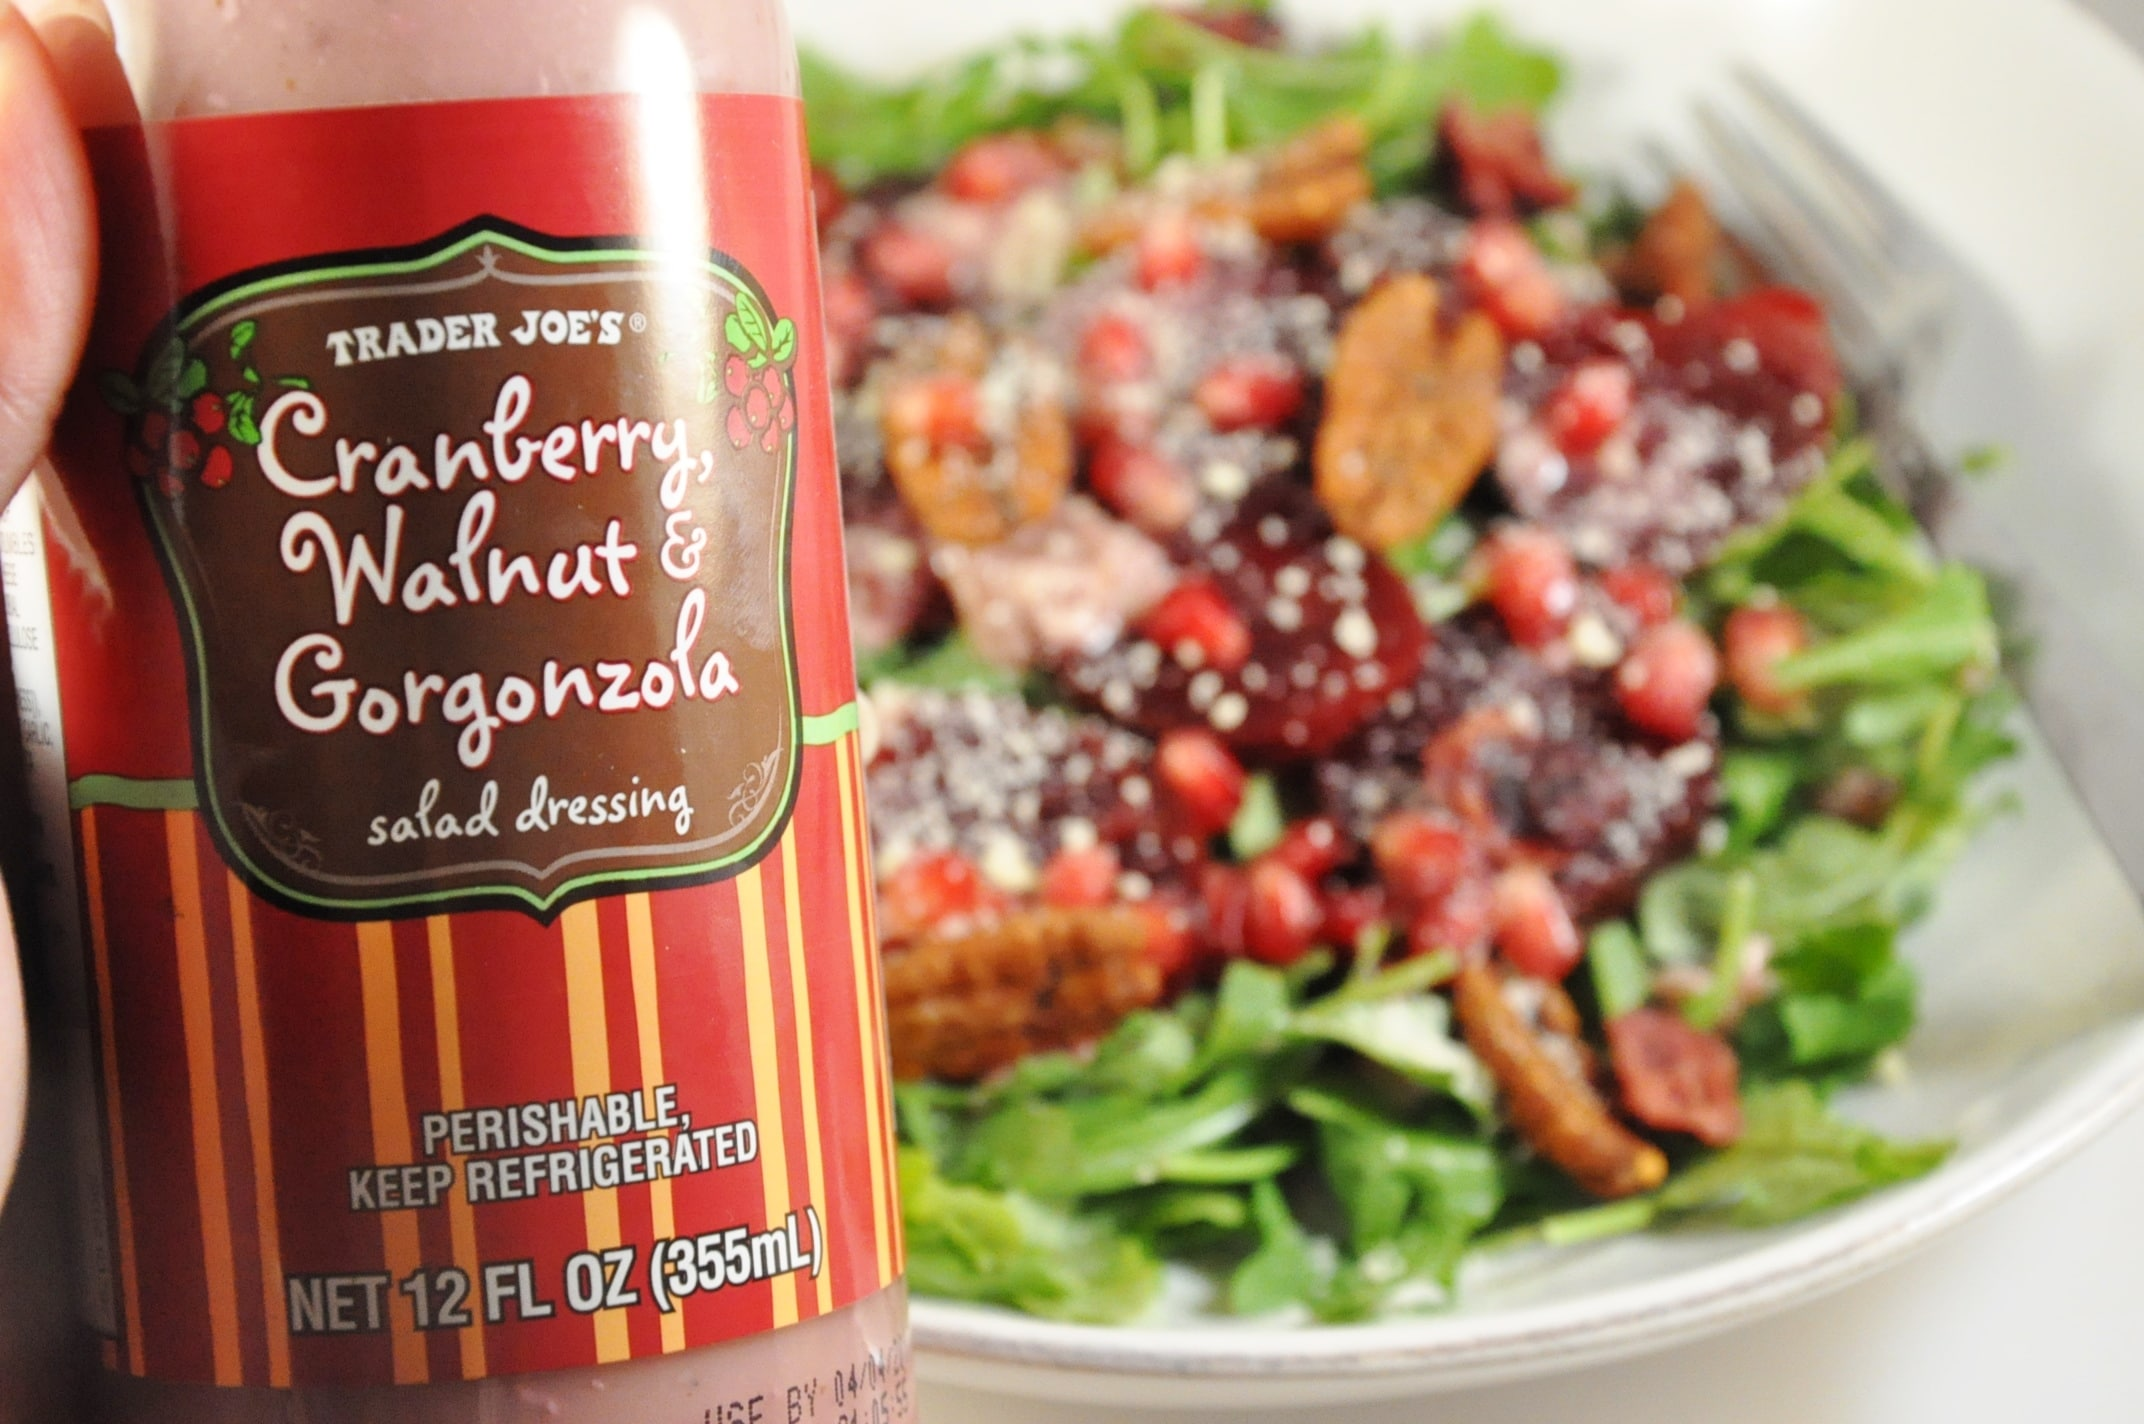 Trader Joe's Cranberry, Walnut & Gorgonzola Dressing